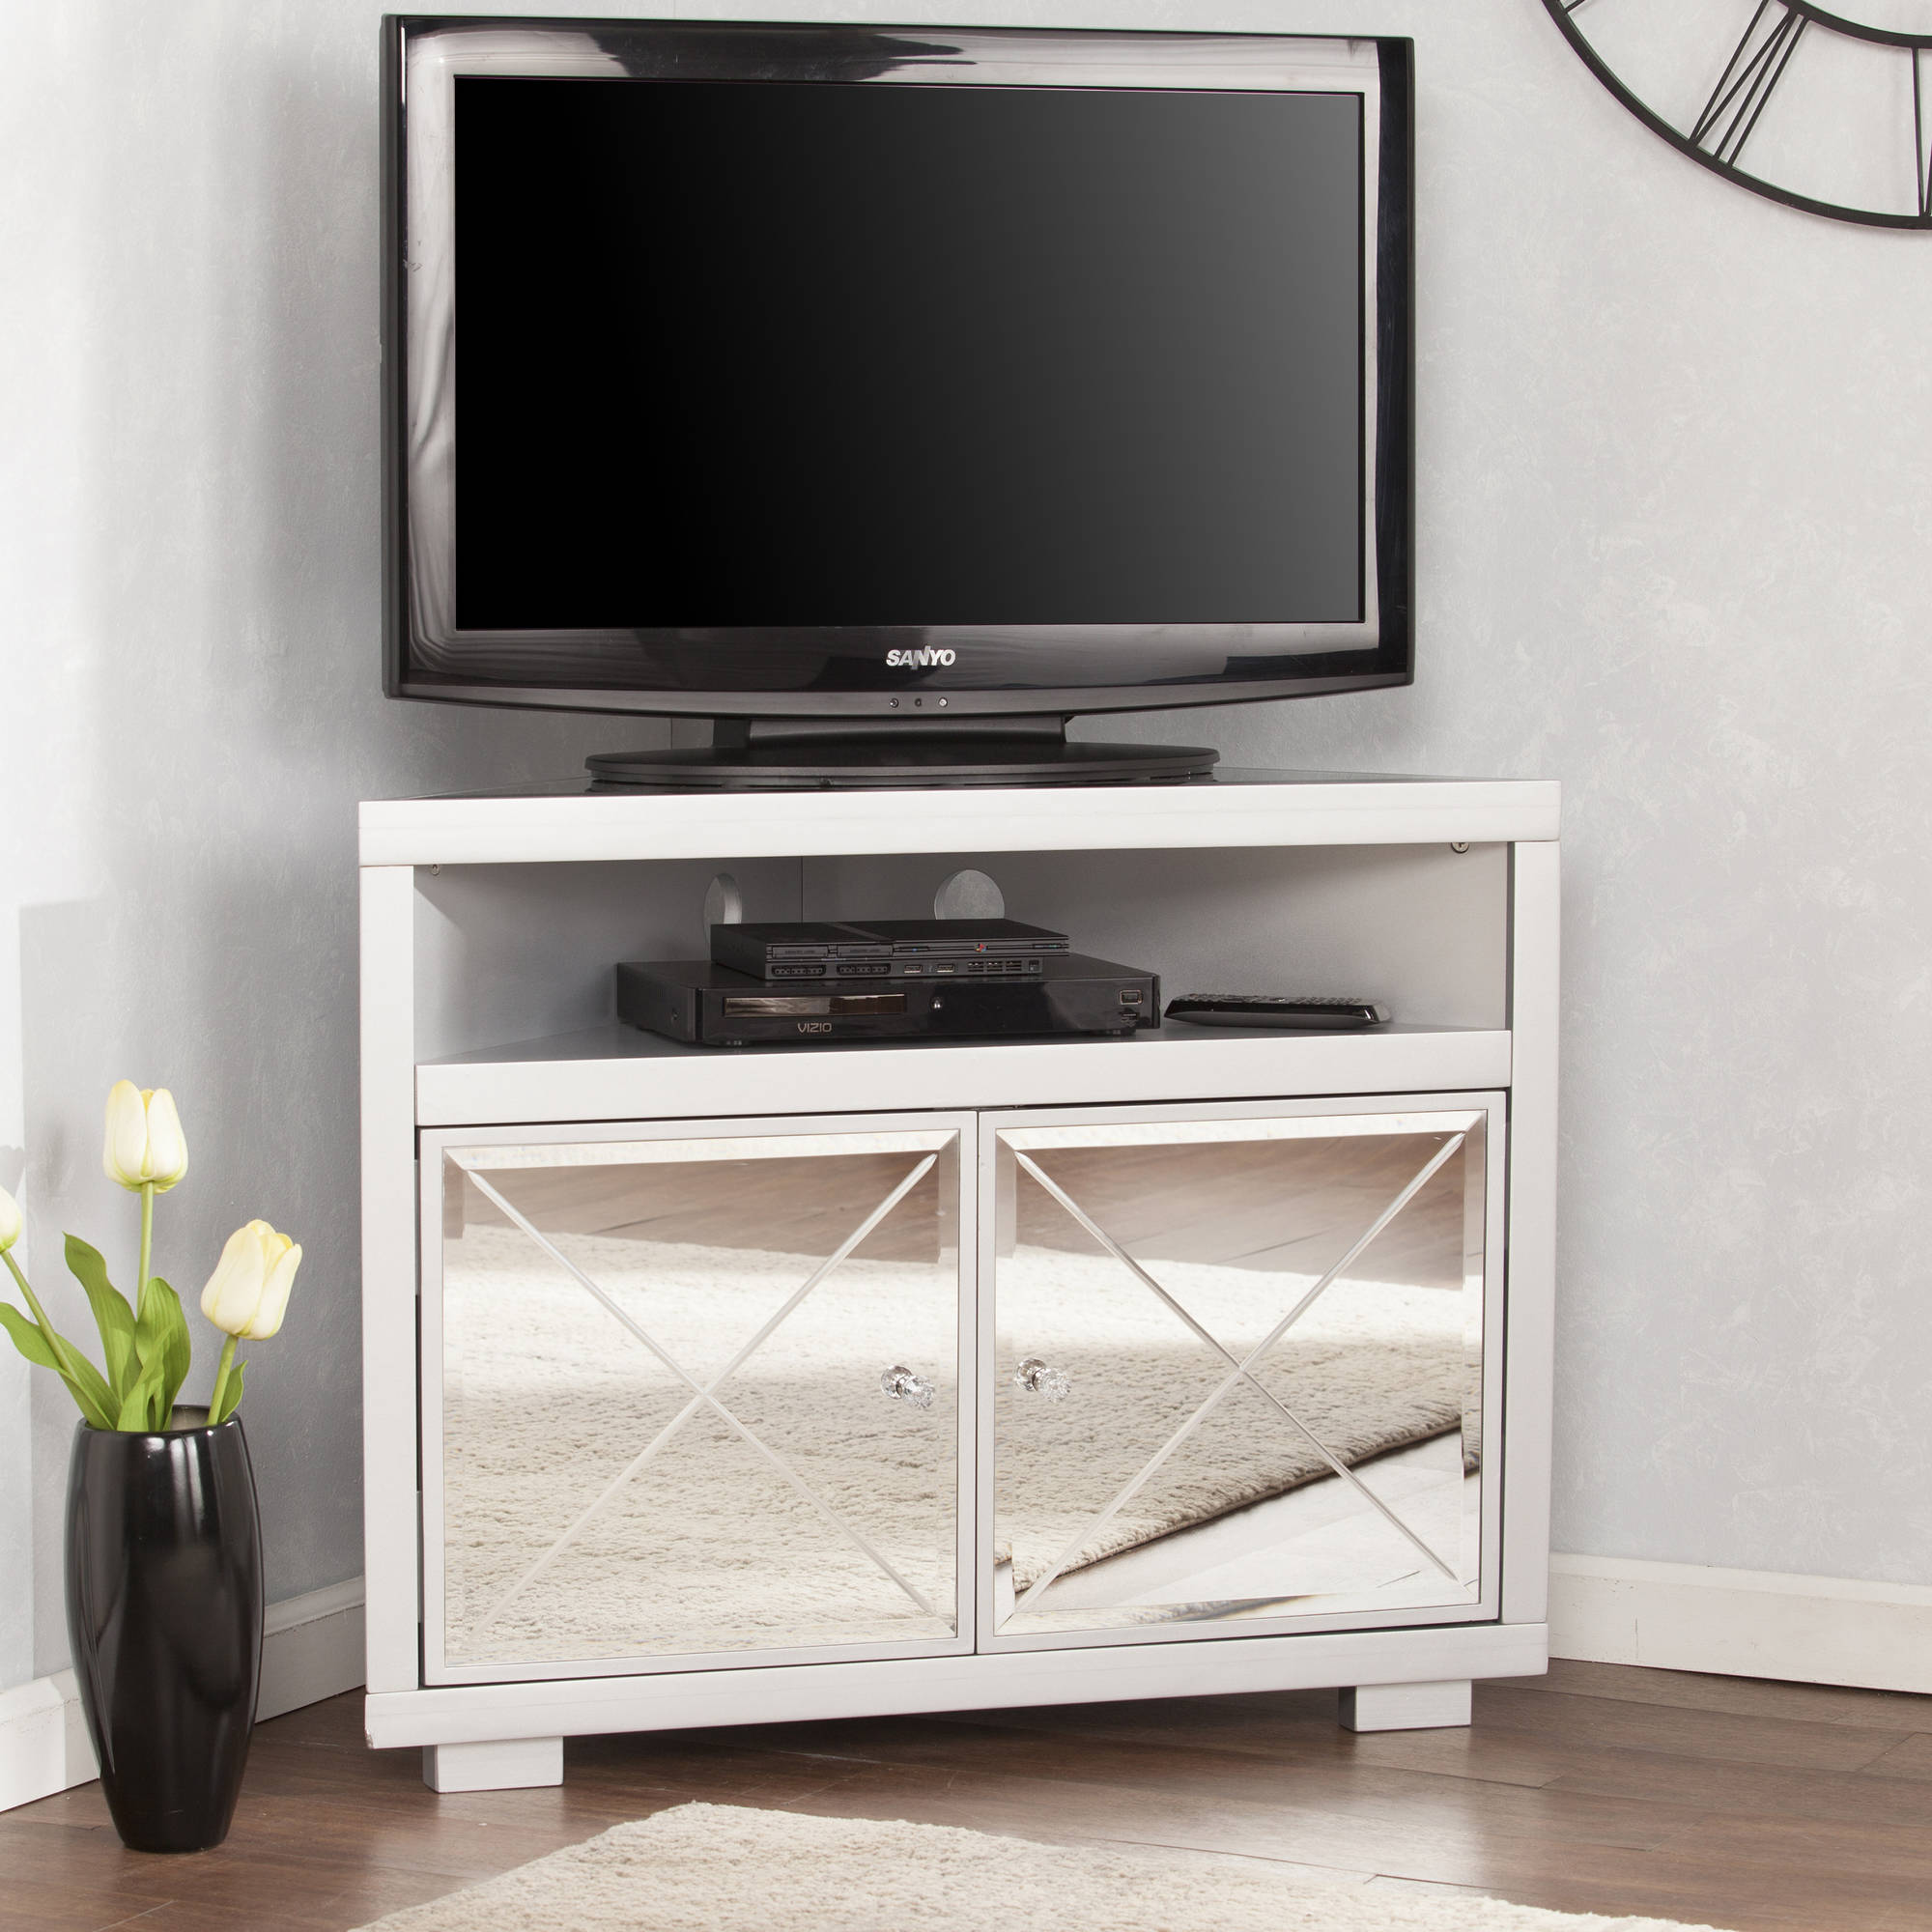 Southern Enterprises Illusions II Mirrored Corner TV Stand